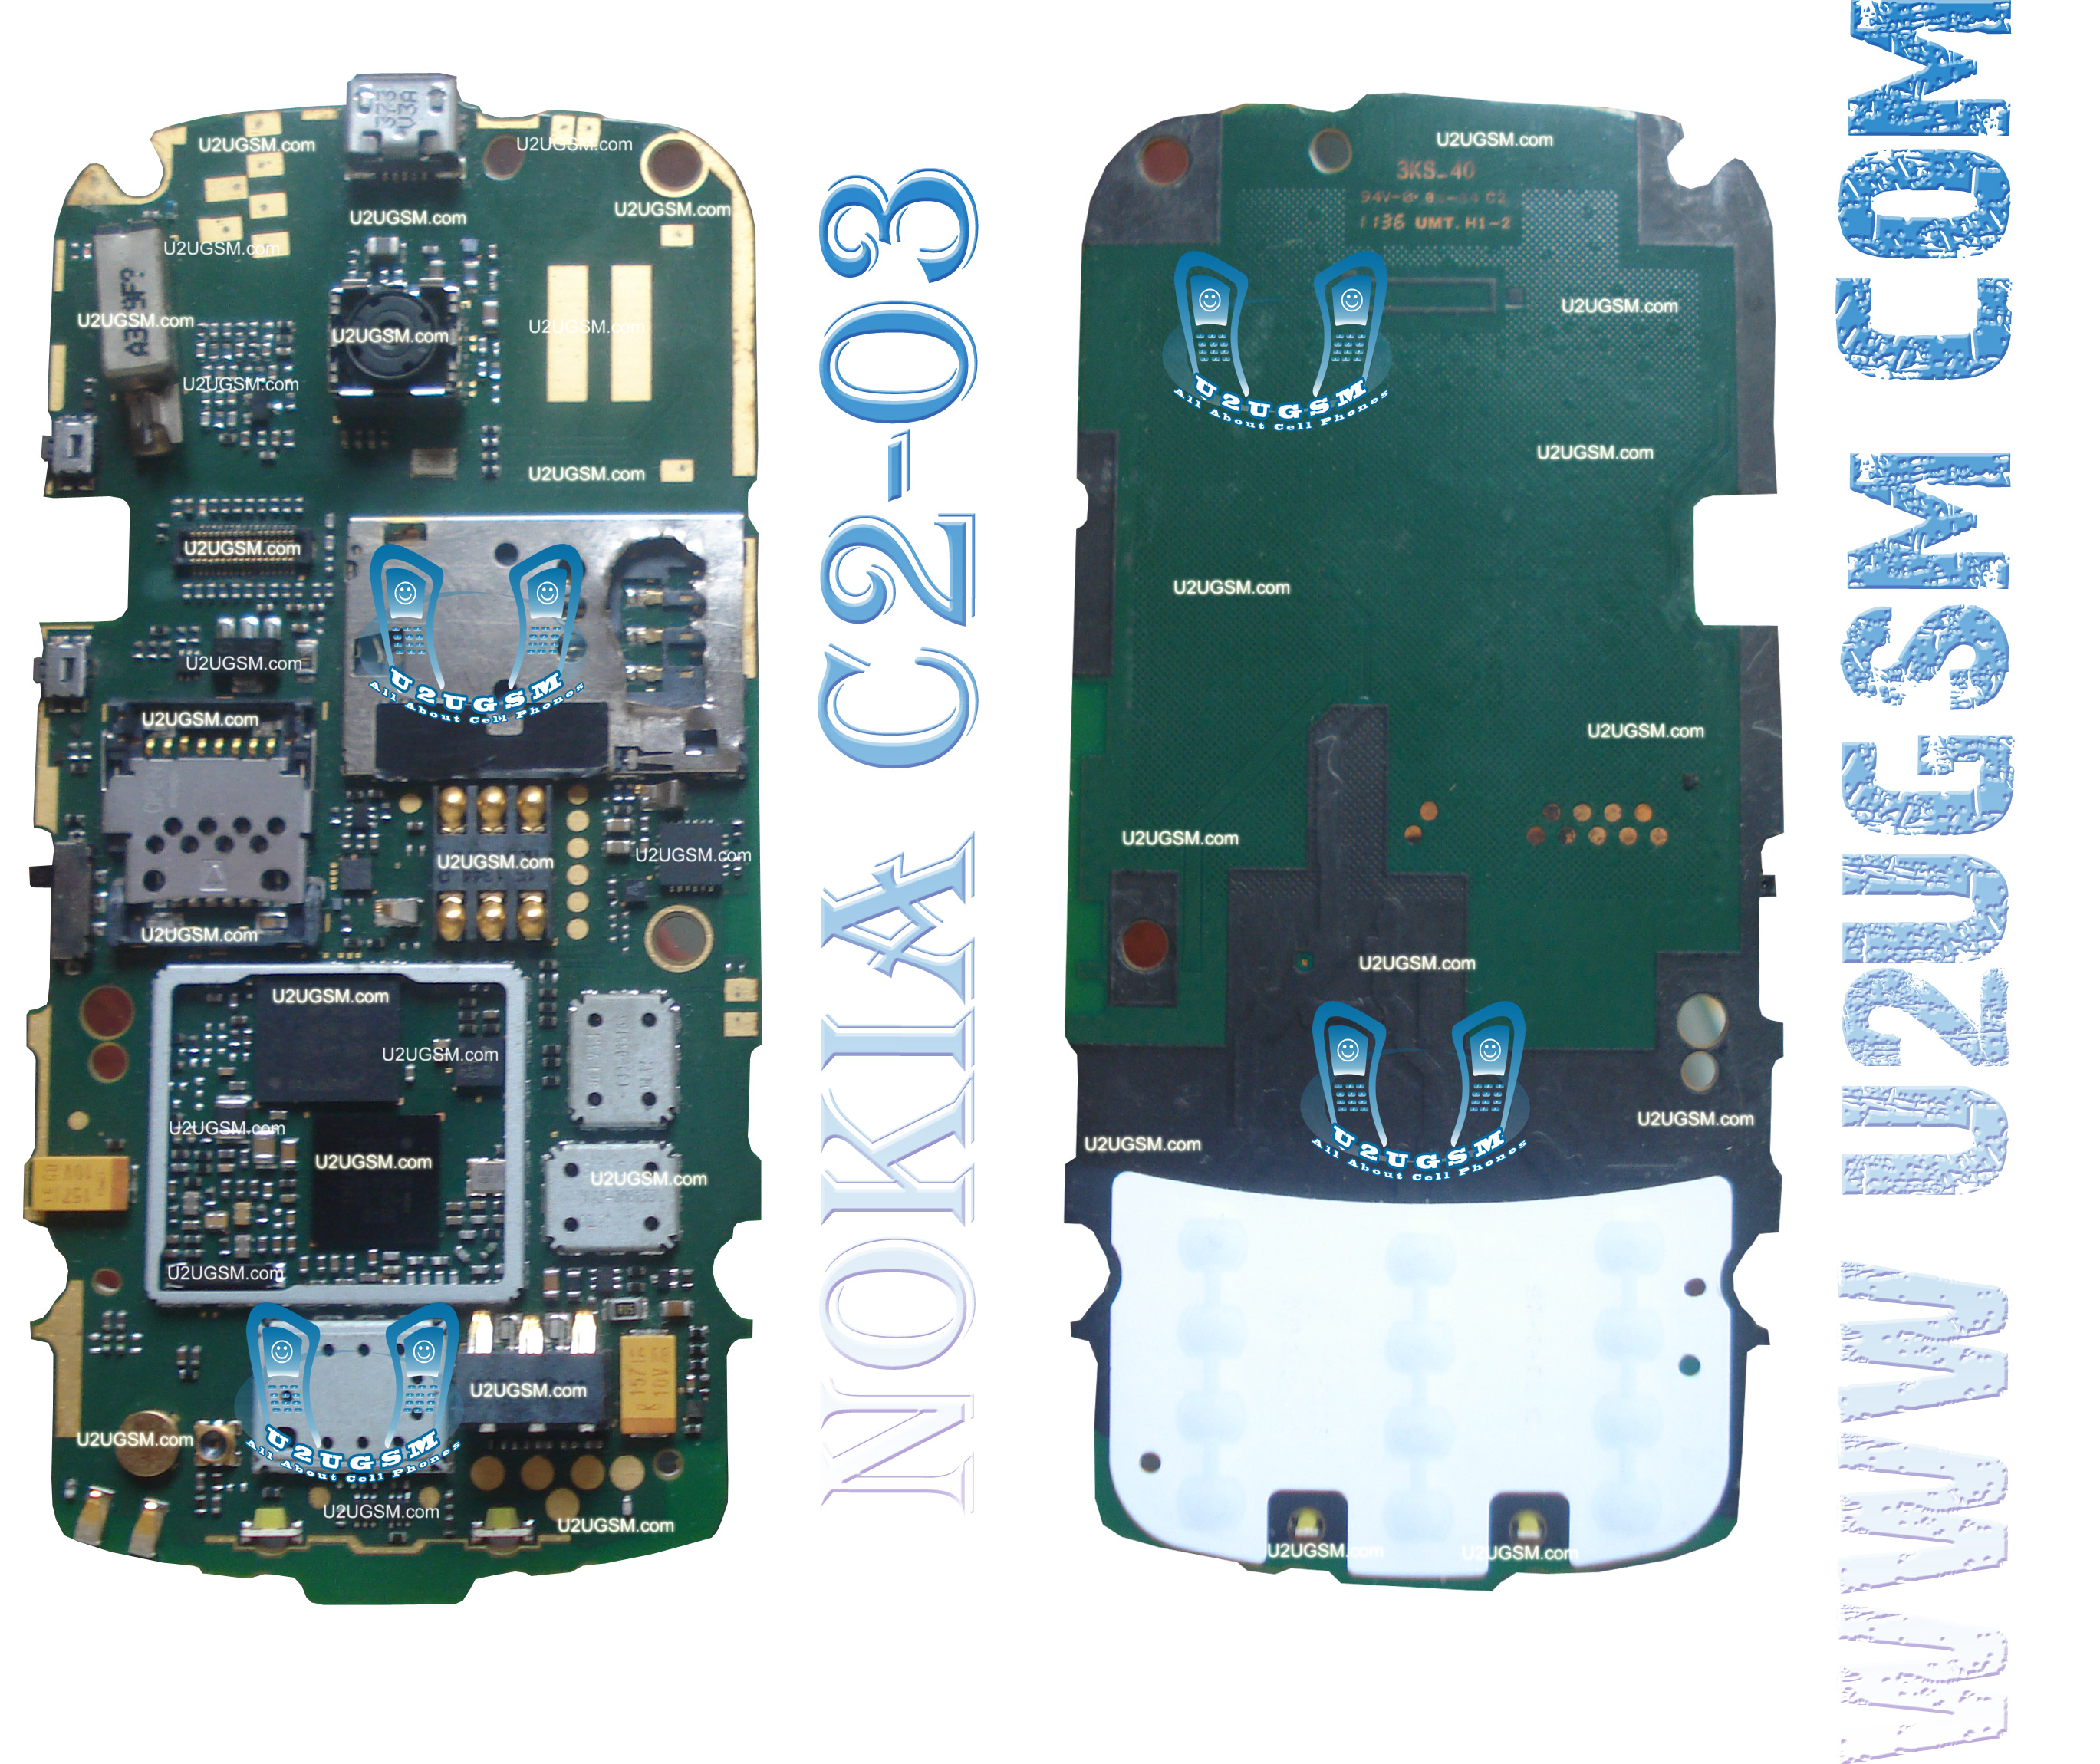 Nokia C2-02 Full PCB Diagram Mother Board Layout.